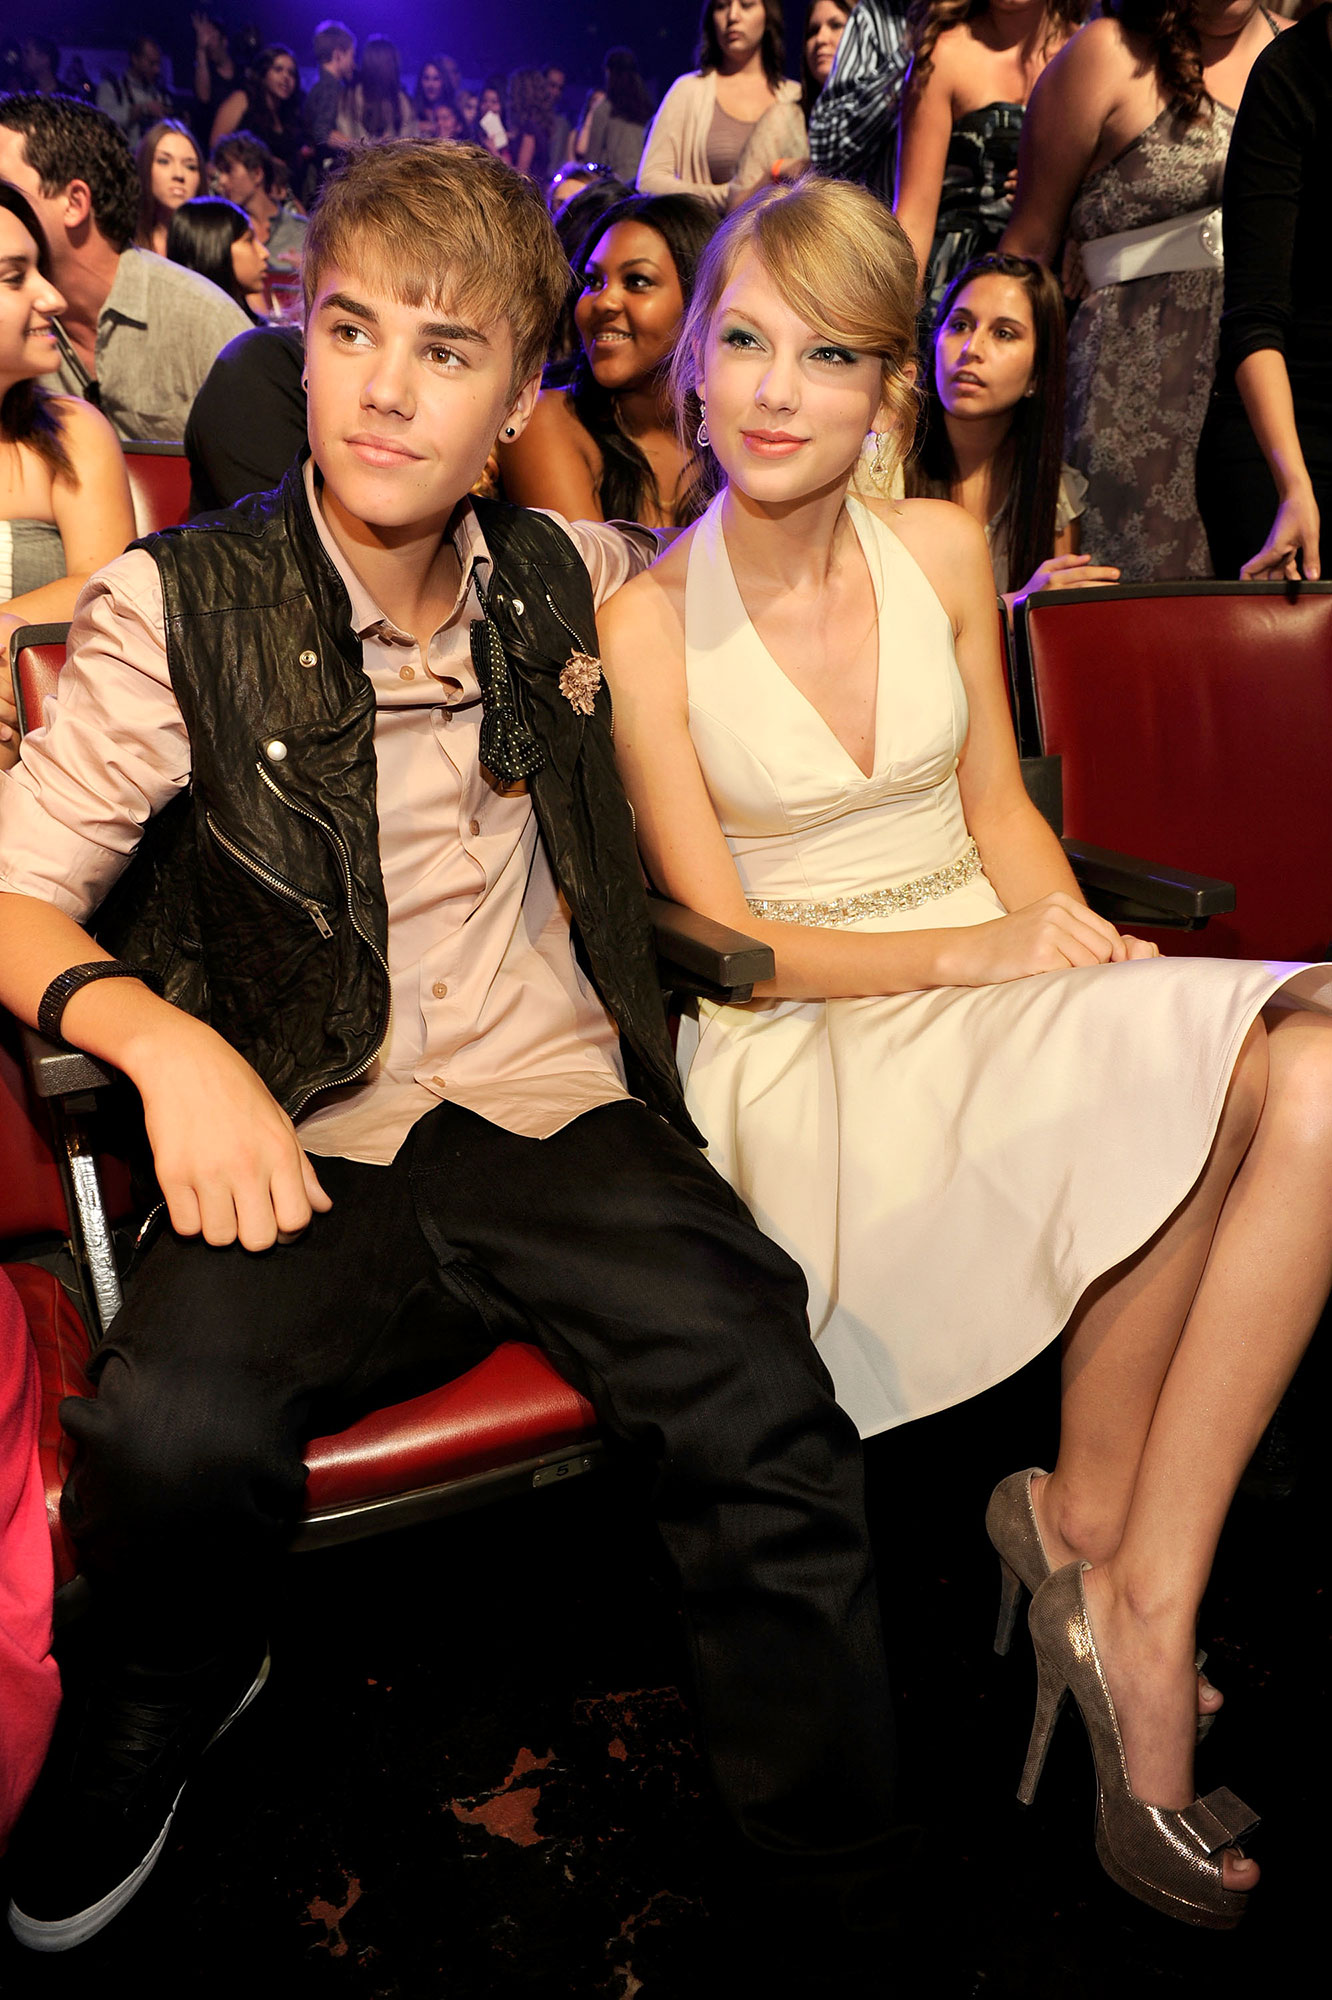 Justin Bieber and Taylor Swift 2011 Teen Choice Awards - Rumors surfaced in 2013 that Swift didn't like Bieber after she stuck her tongue out when the singer kissed then-girlfriend Selena Gomez, Swift's close friend, backstage at the Billboard Music Awards. It wasn't until Bieber was mentioned in Swift's aforementioned post about Braun, however, that she addressed any issues between them.